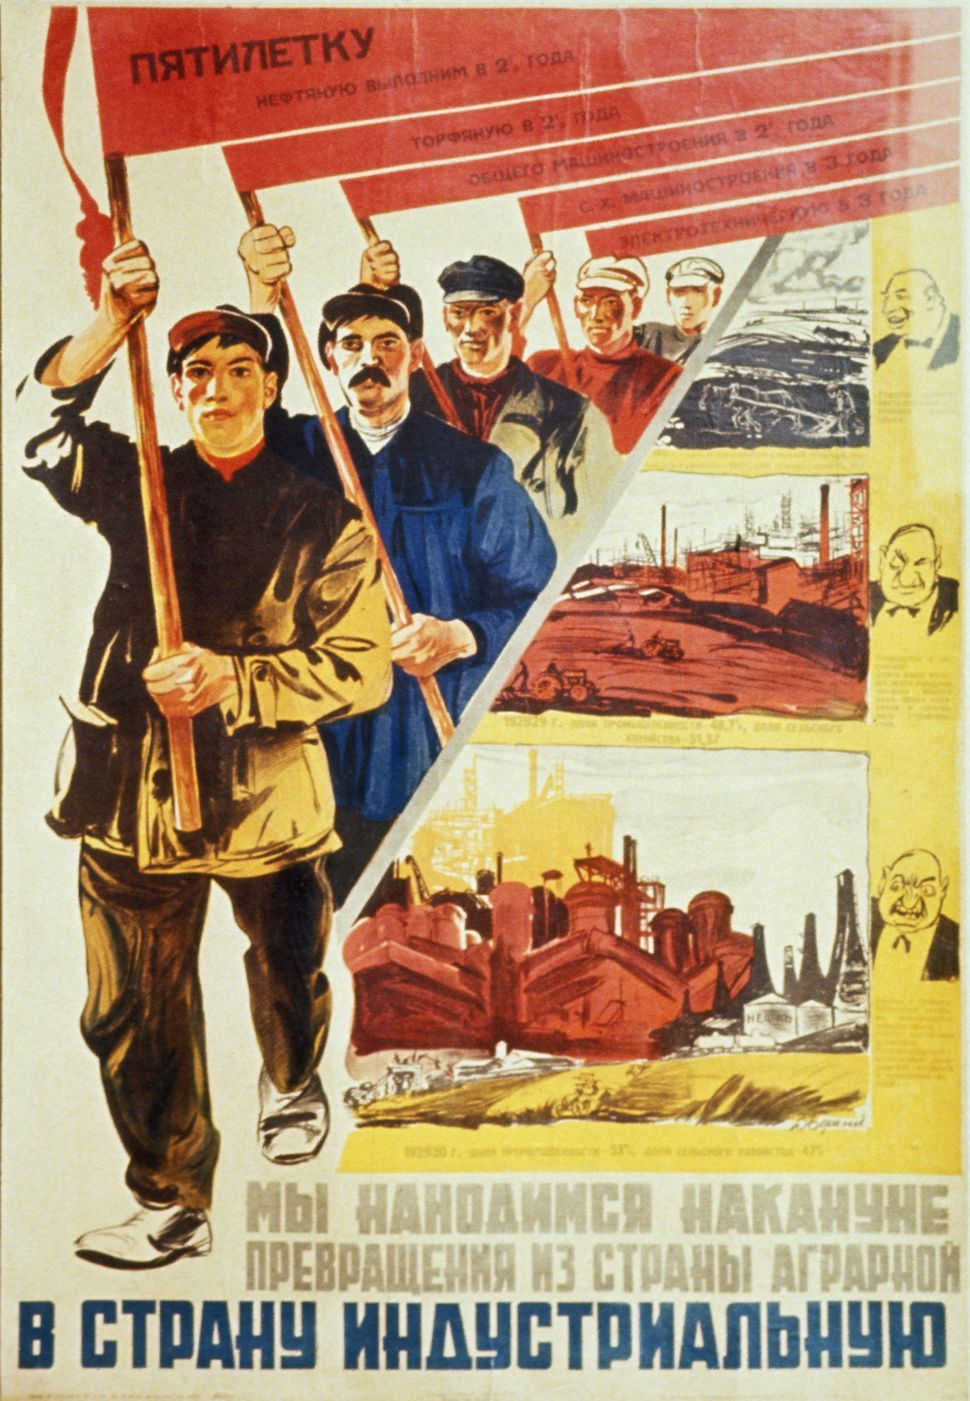 1930's poster supporting the Five-Year Plan.